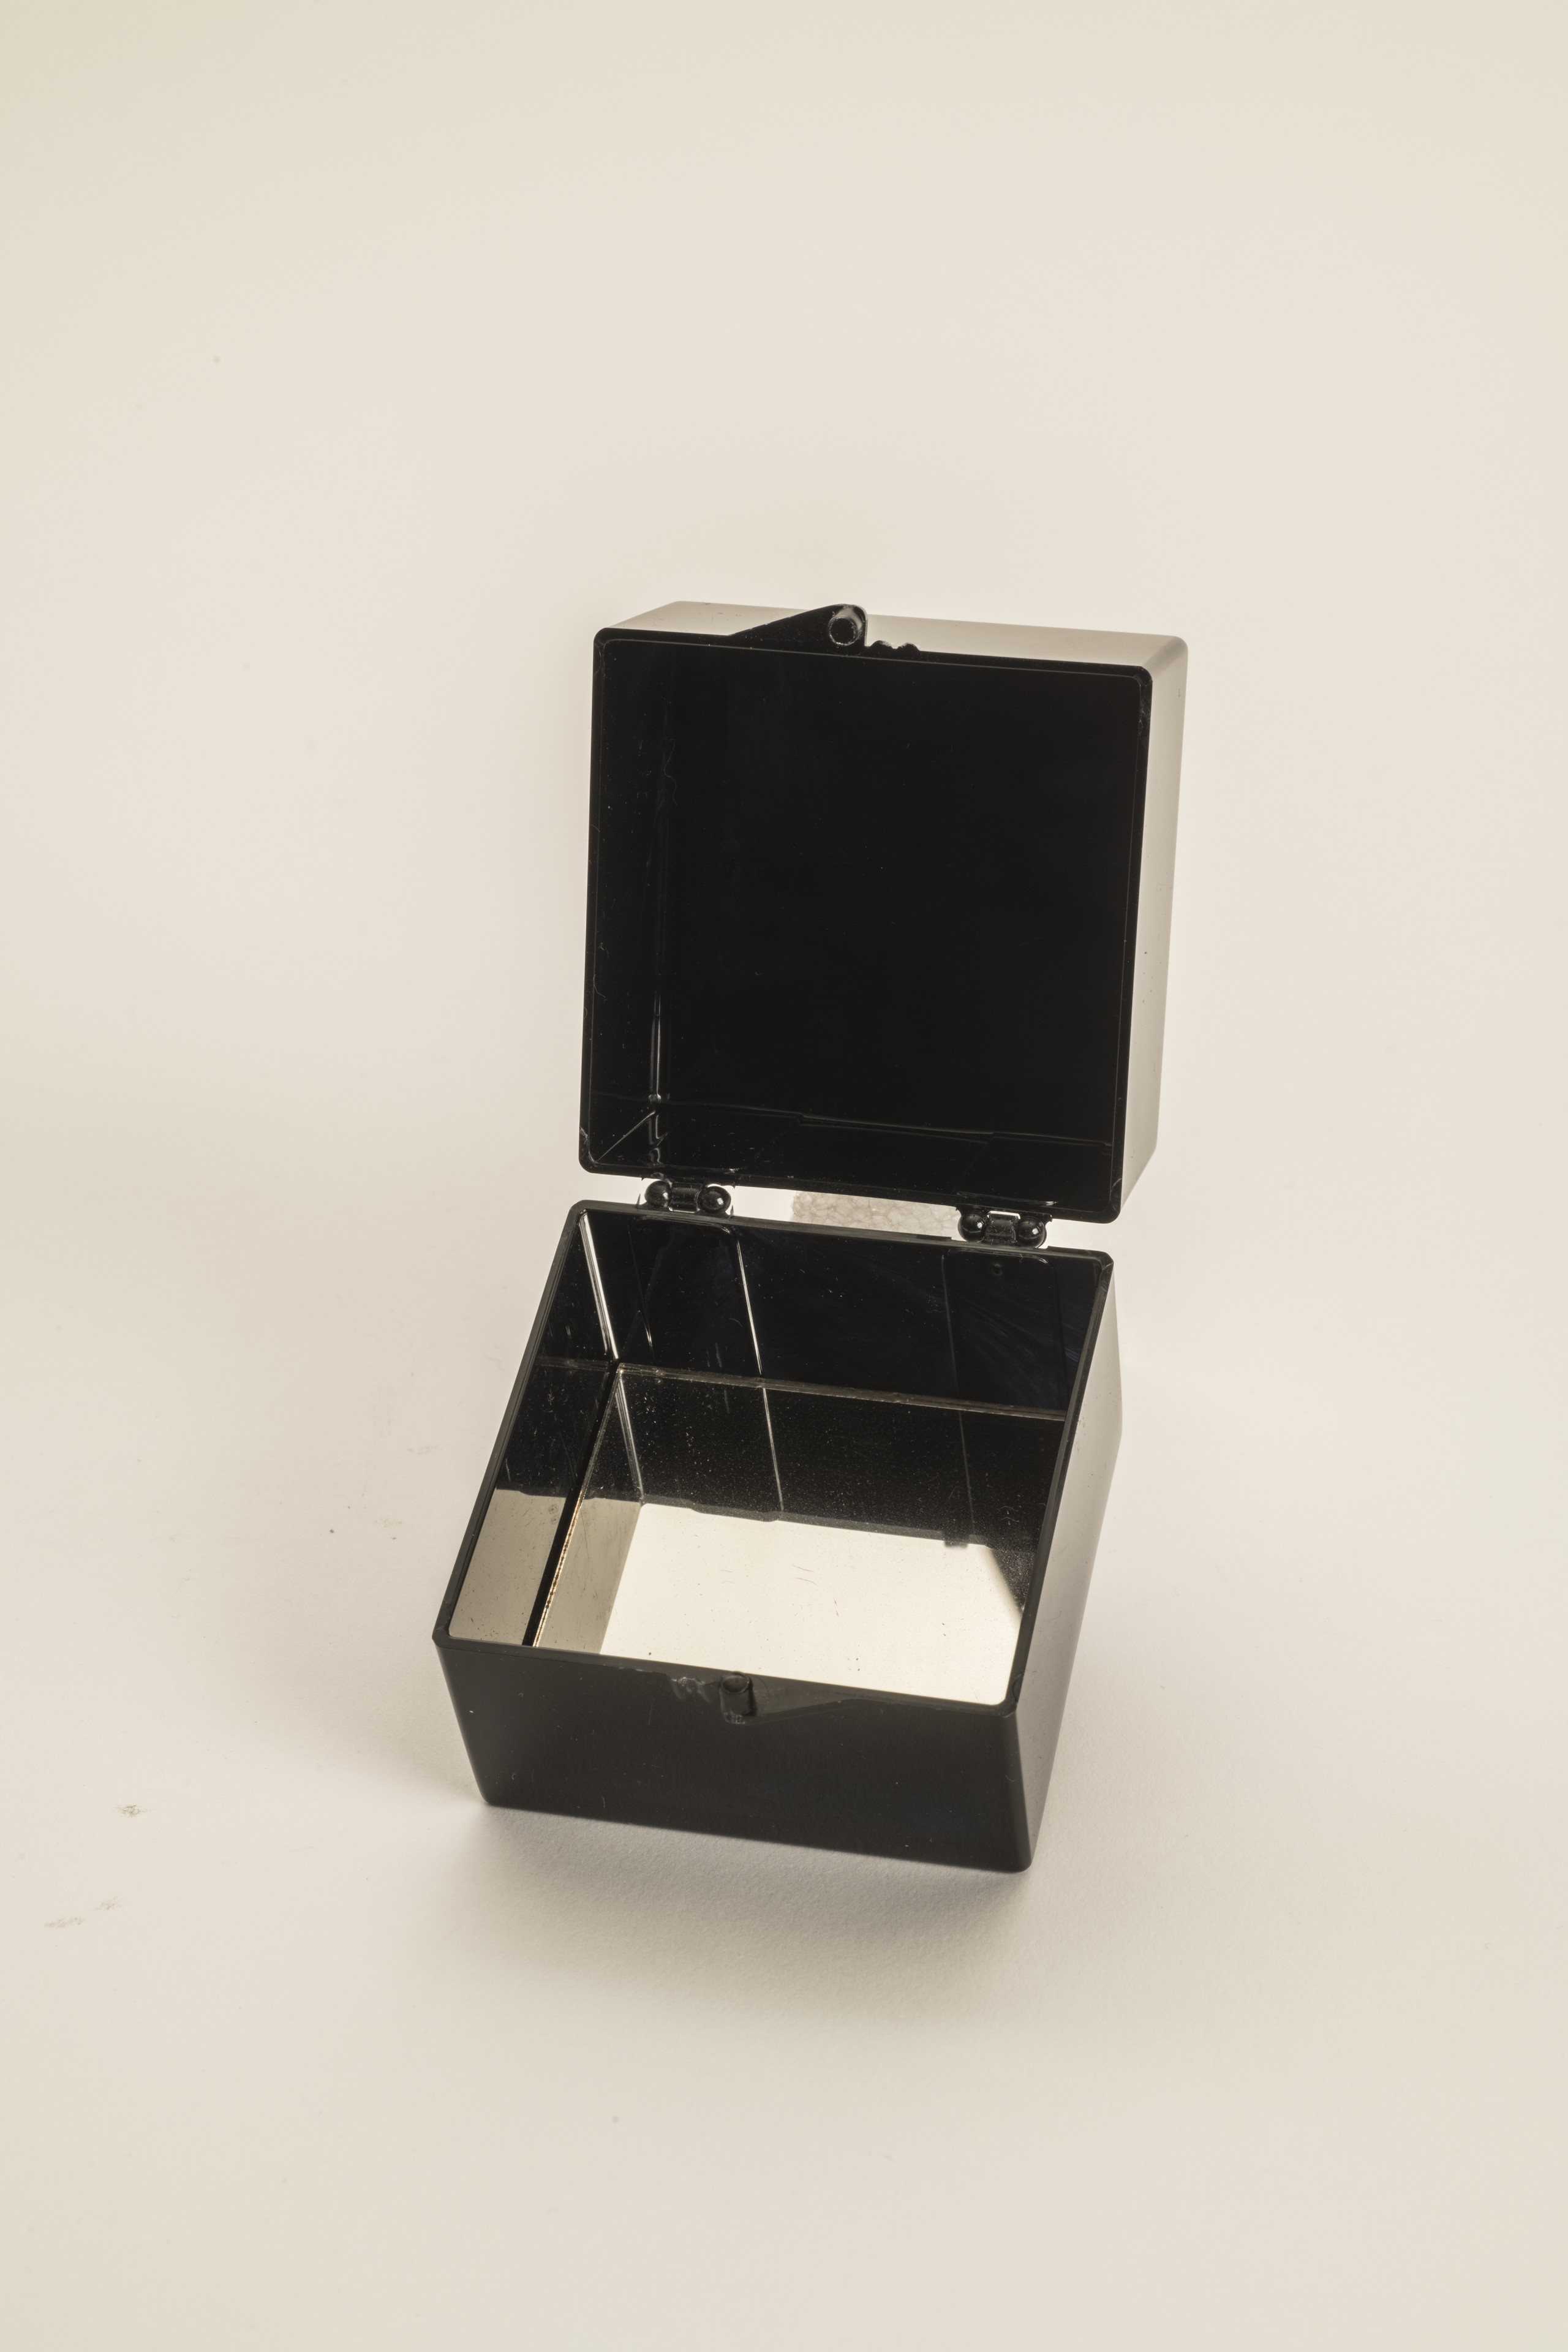 A small black plastic box that is opened to reveal a mirrored interior bottom.